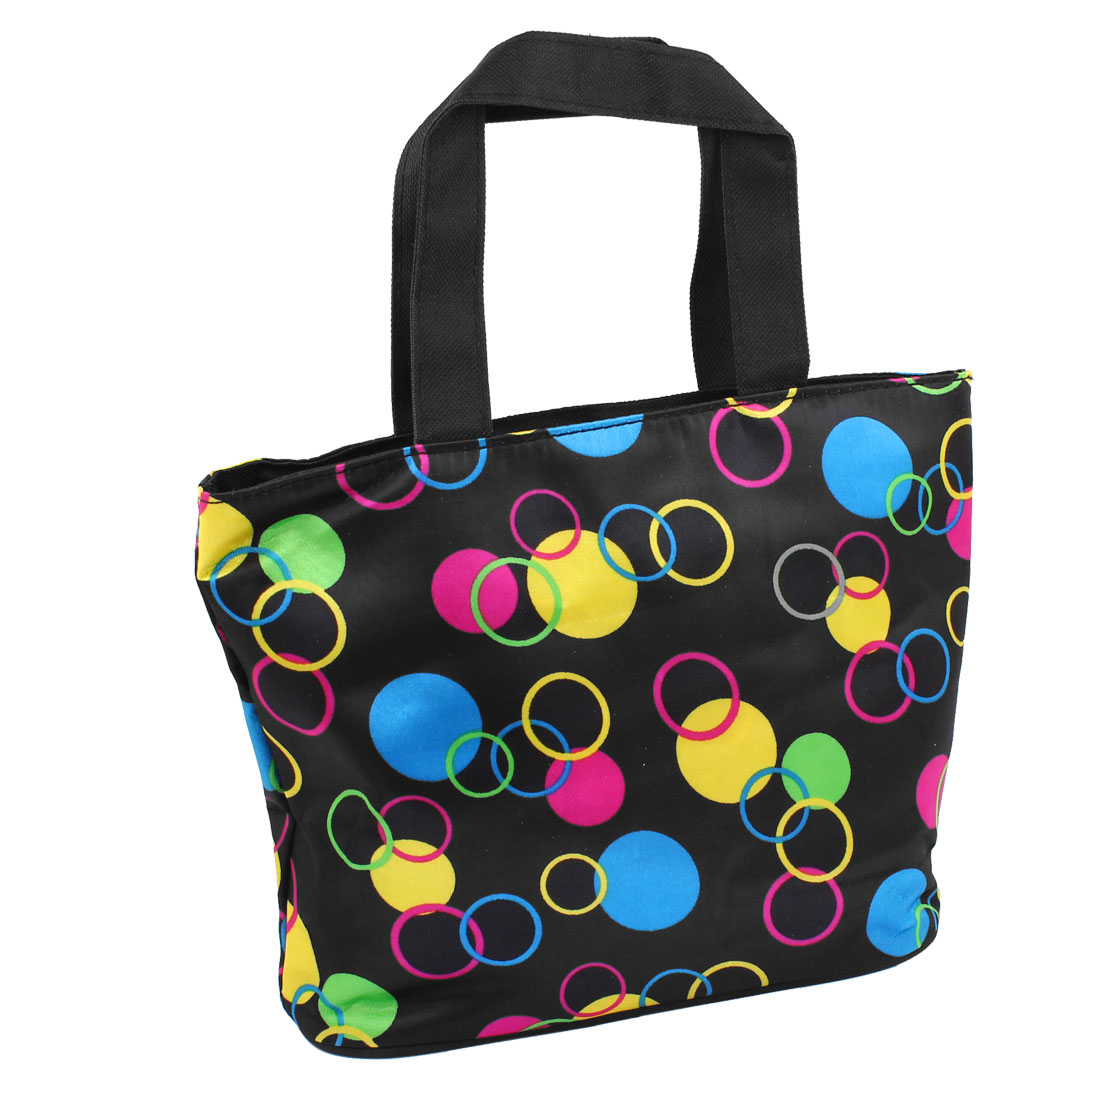 Multicolored Circle Dotted Pattern Zip Up Foldable Shopping Handbag Tote Black